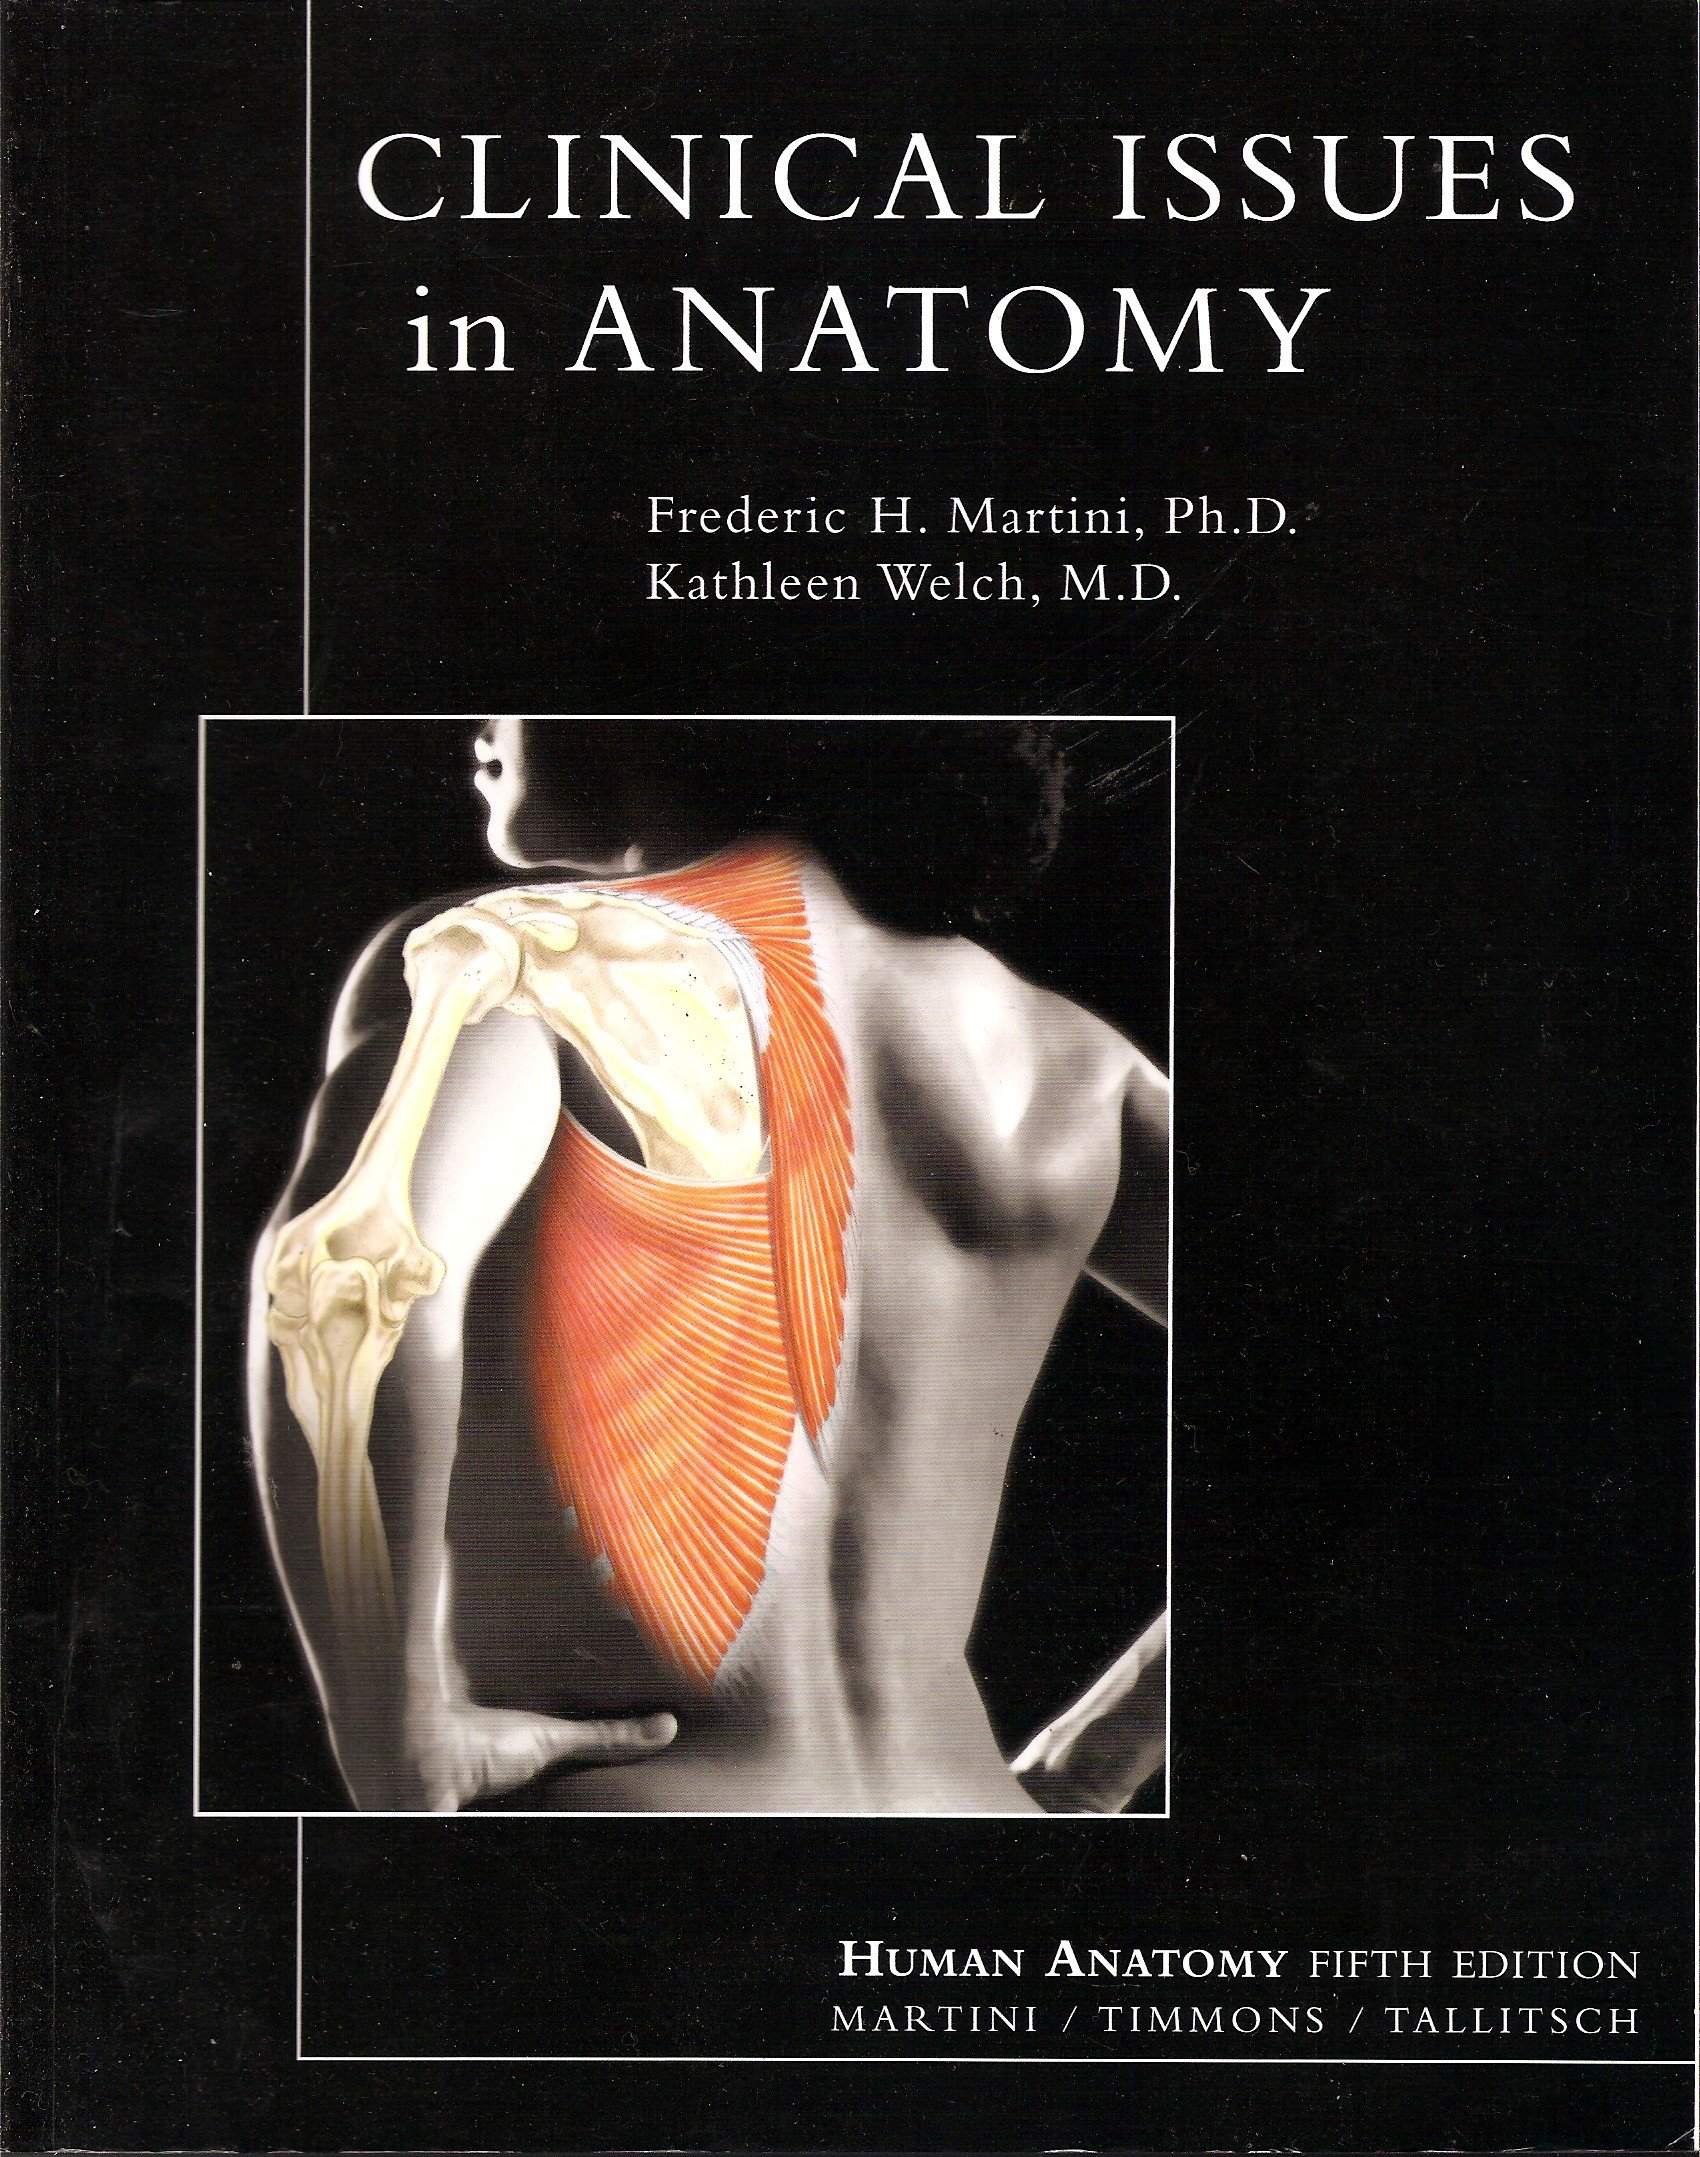 Clinical Issues In Anatomy Supplement For Human Anatomy Fifth